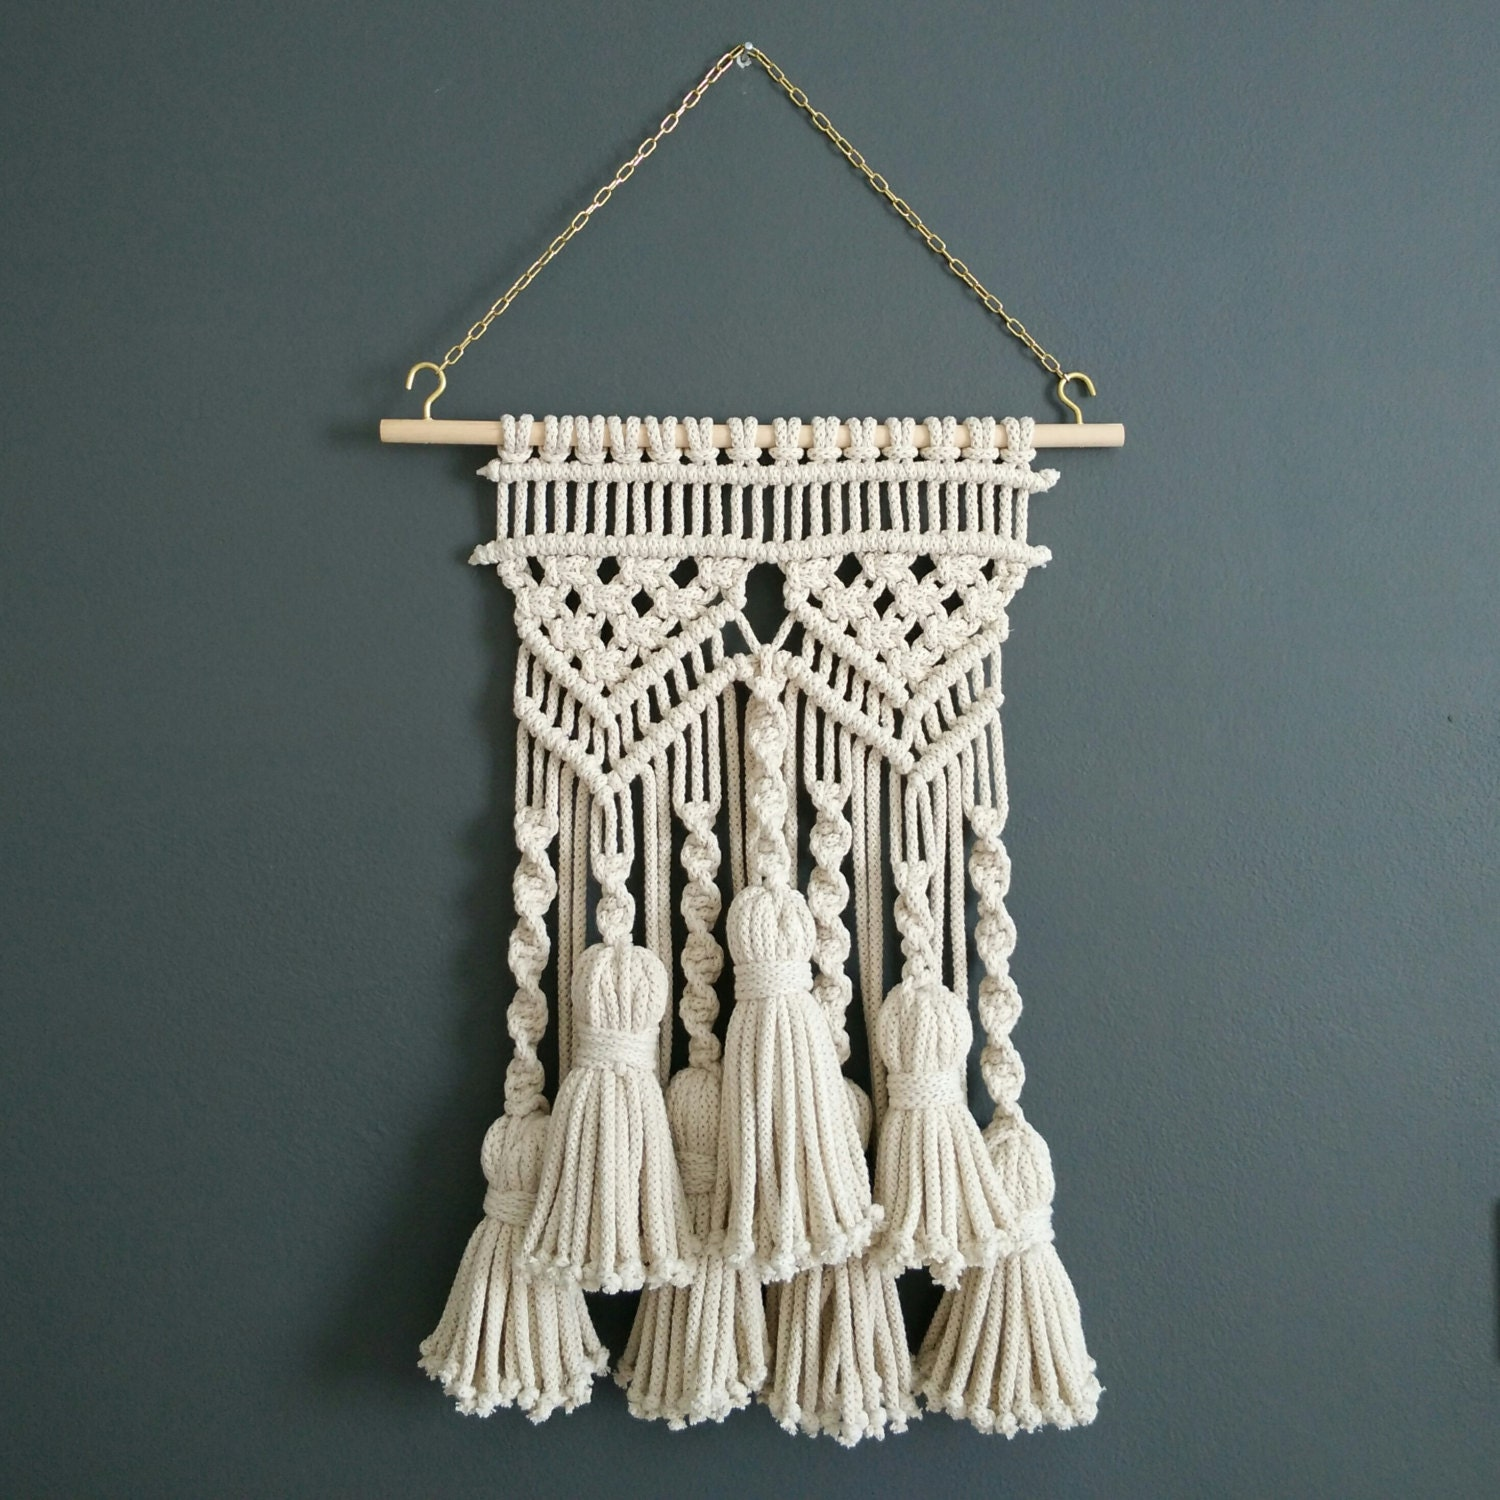 Tassel macrame wall hanging macram bohemian weaving wall art for Decoration murale 1 wall